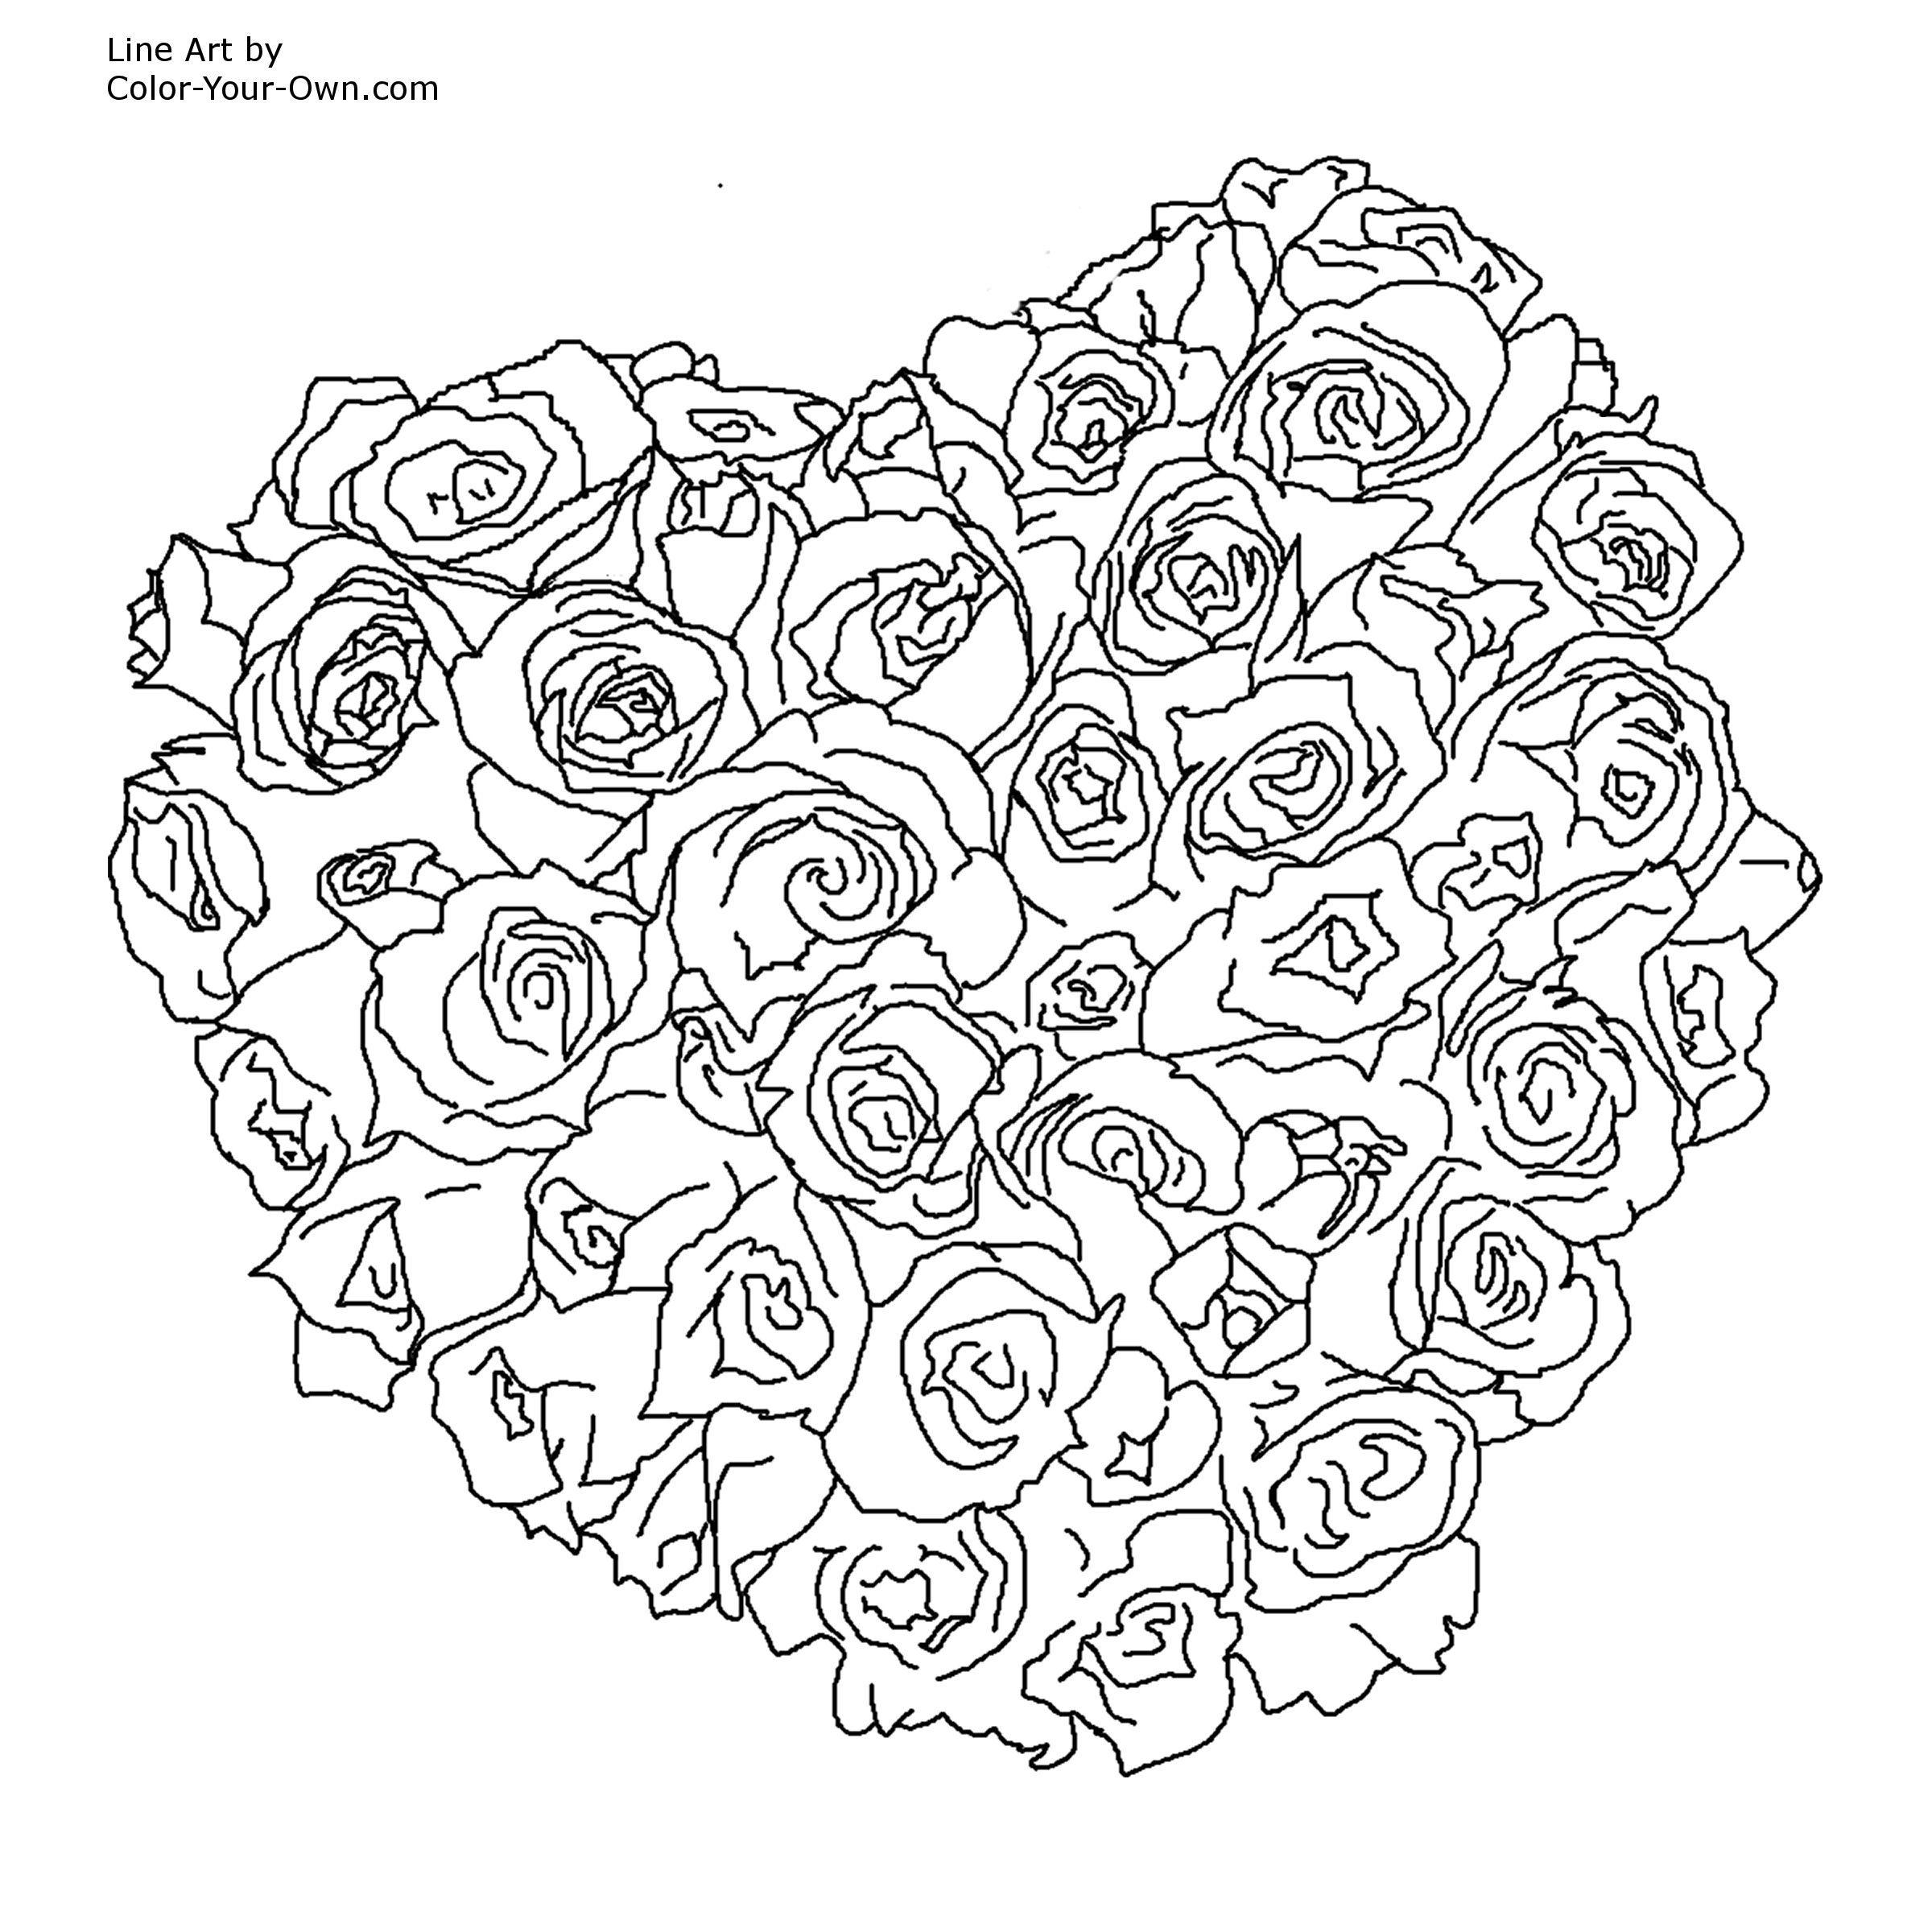 coloring pages of mandala to print | For the 8.5 x 11 printable ...